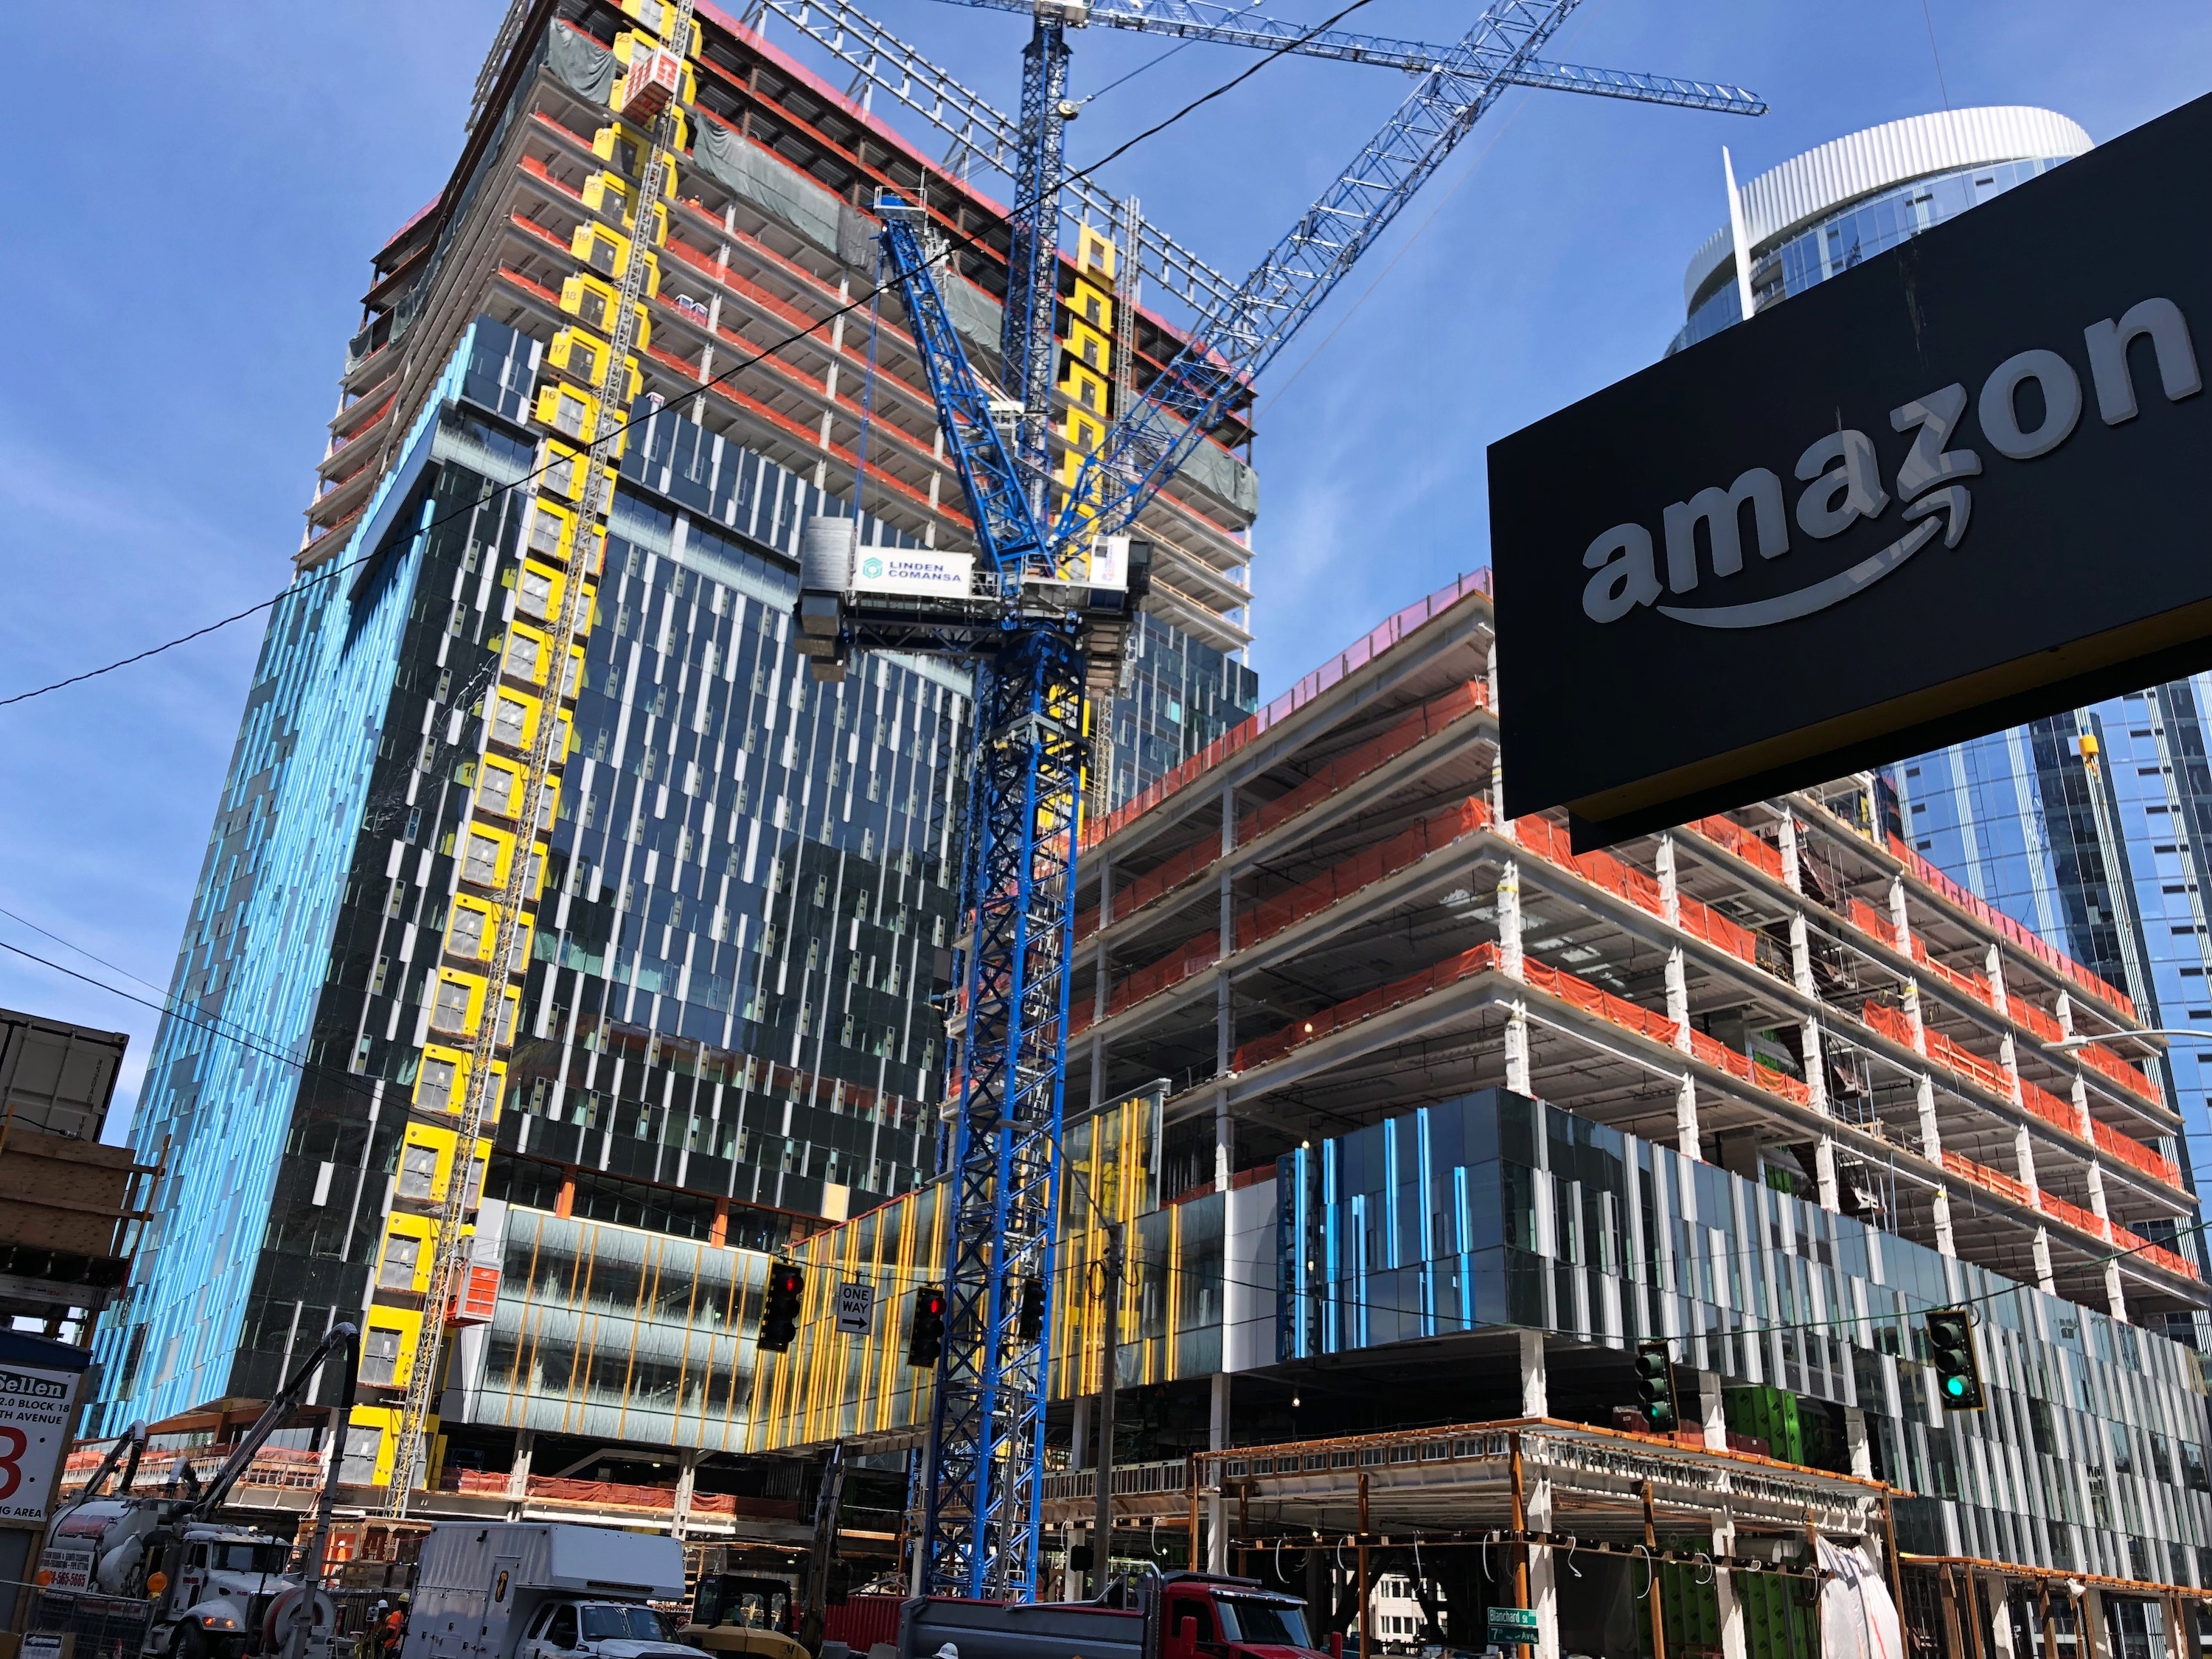 a67a4e7061812 Amazon donates $8M for affordable housing in 'HQ regions,' launches ...